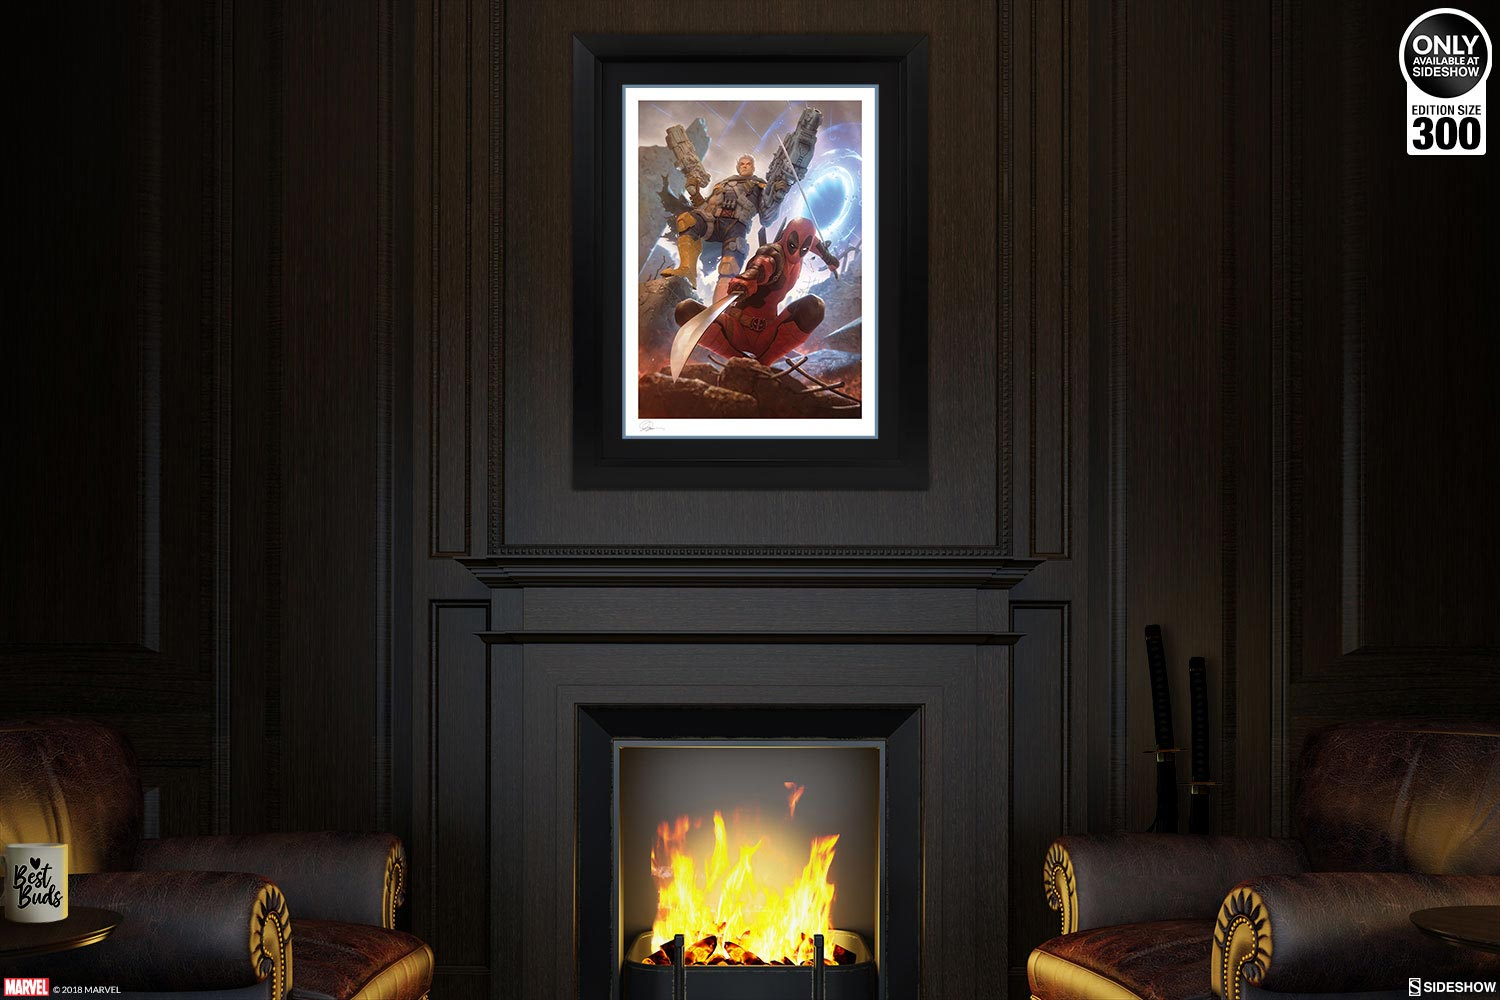 Deadpool u0026 Cable Limited Edition Art Print & Charming Cable Wall Art Pictures - Best Image Engine - afyongmh.com